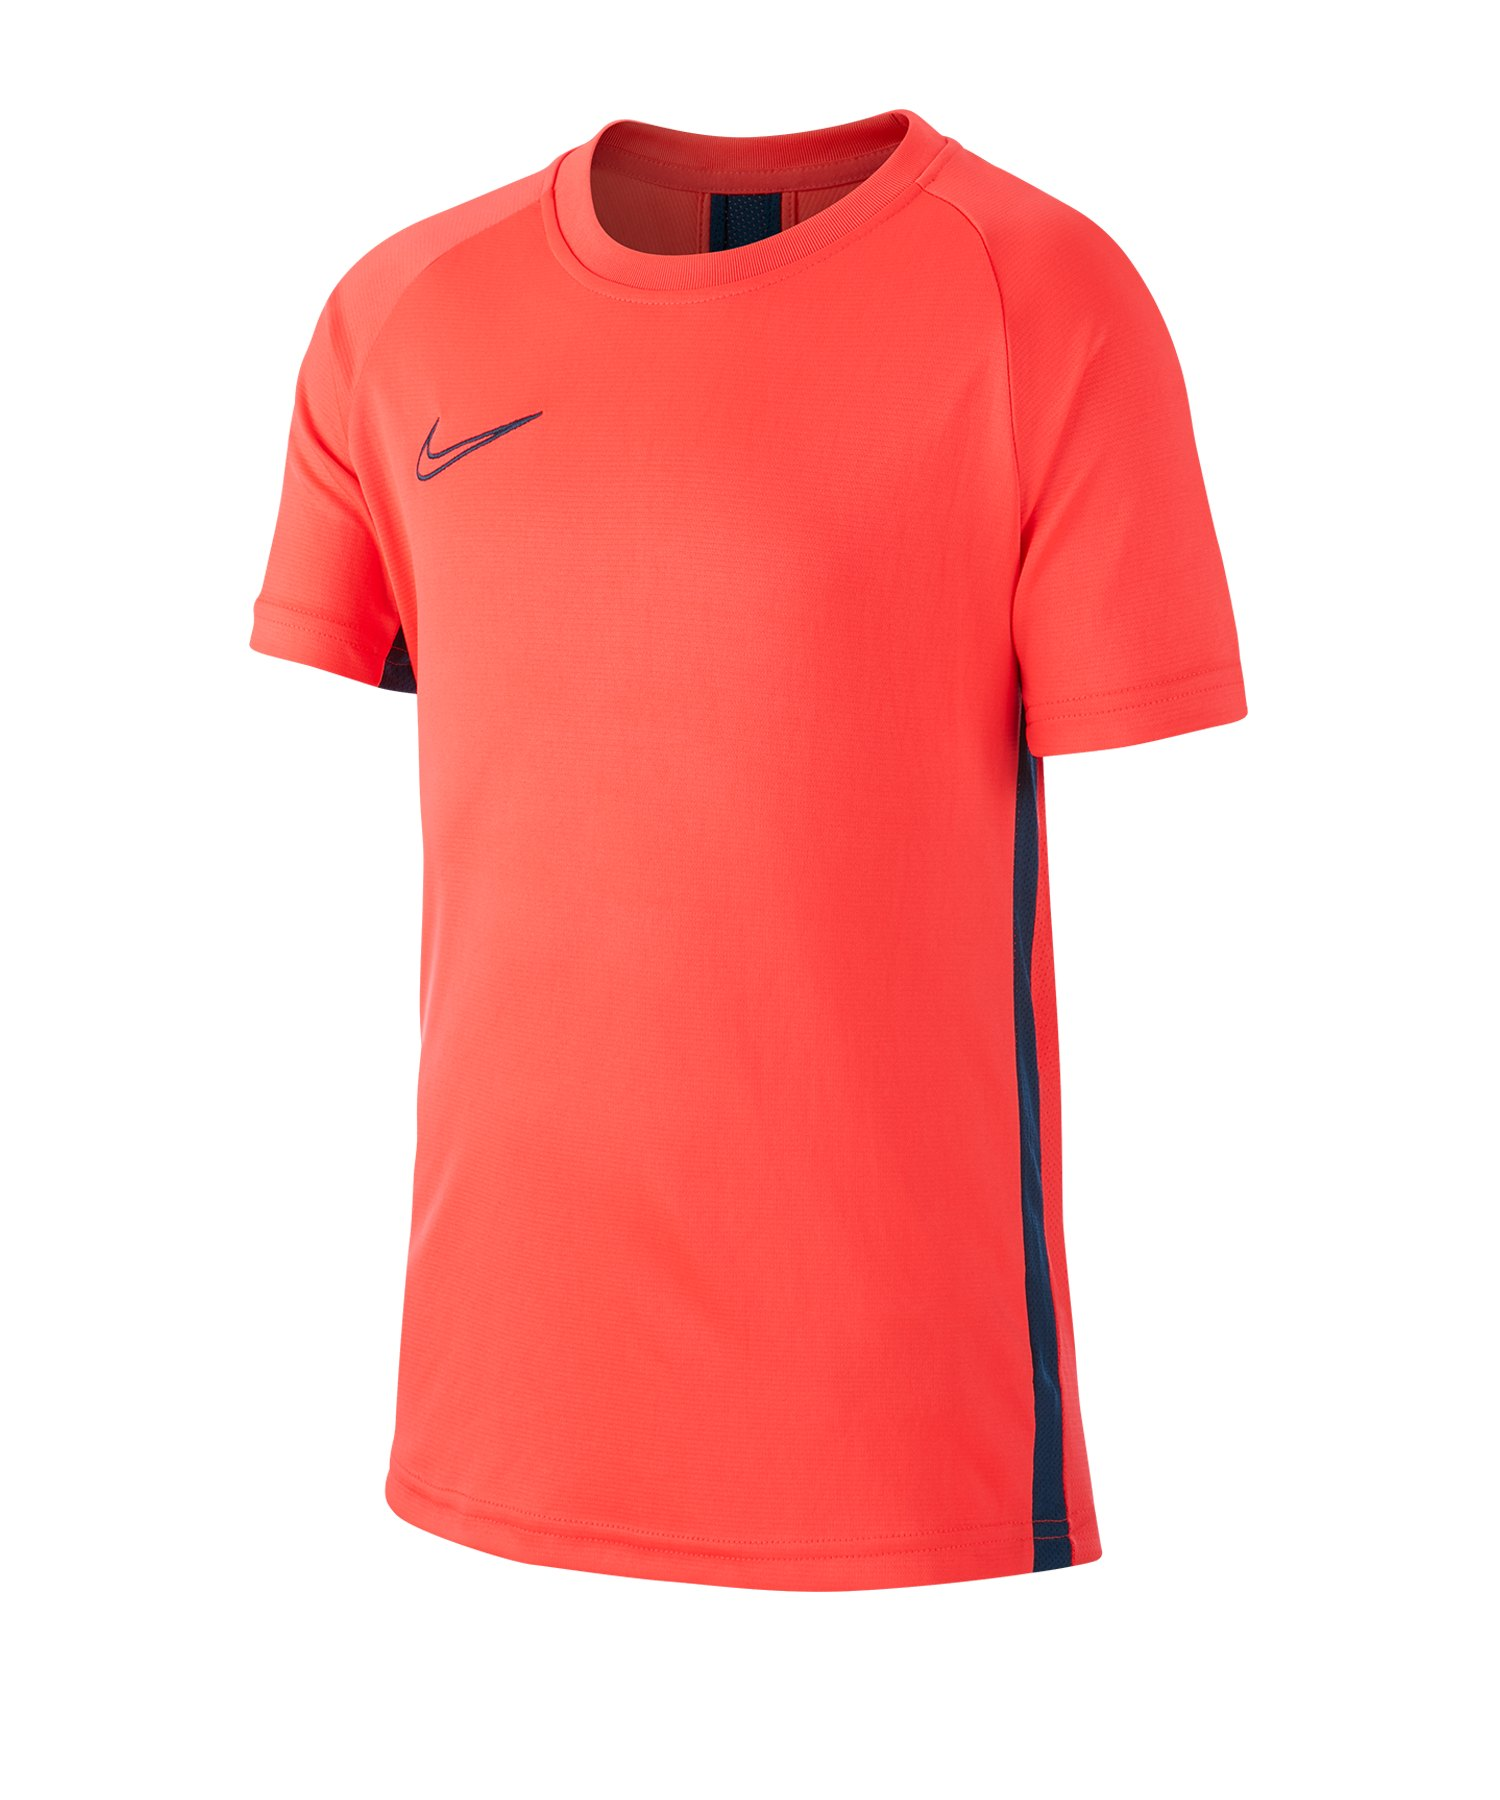 Nike Academy Dri-FIT Top T-Shirt Kids Rot F644 - rot